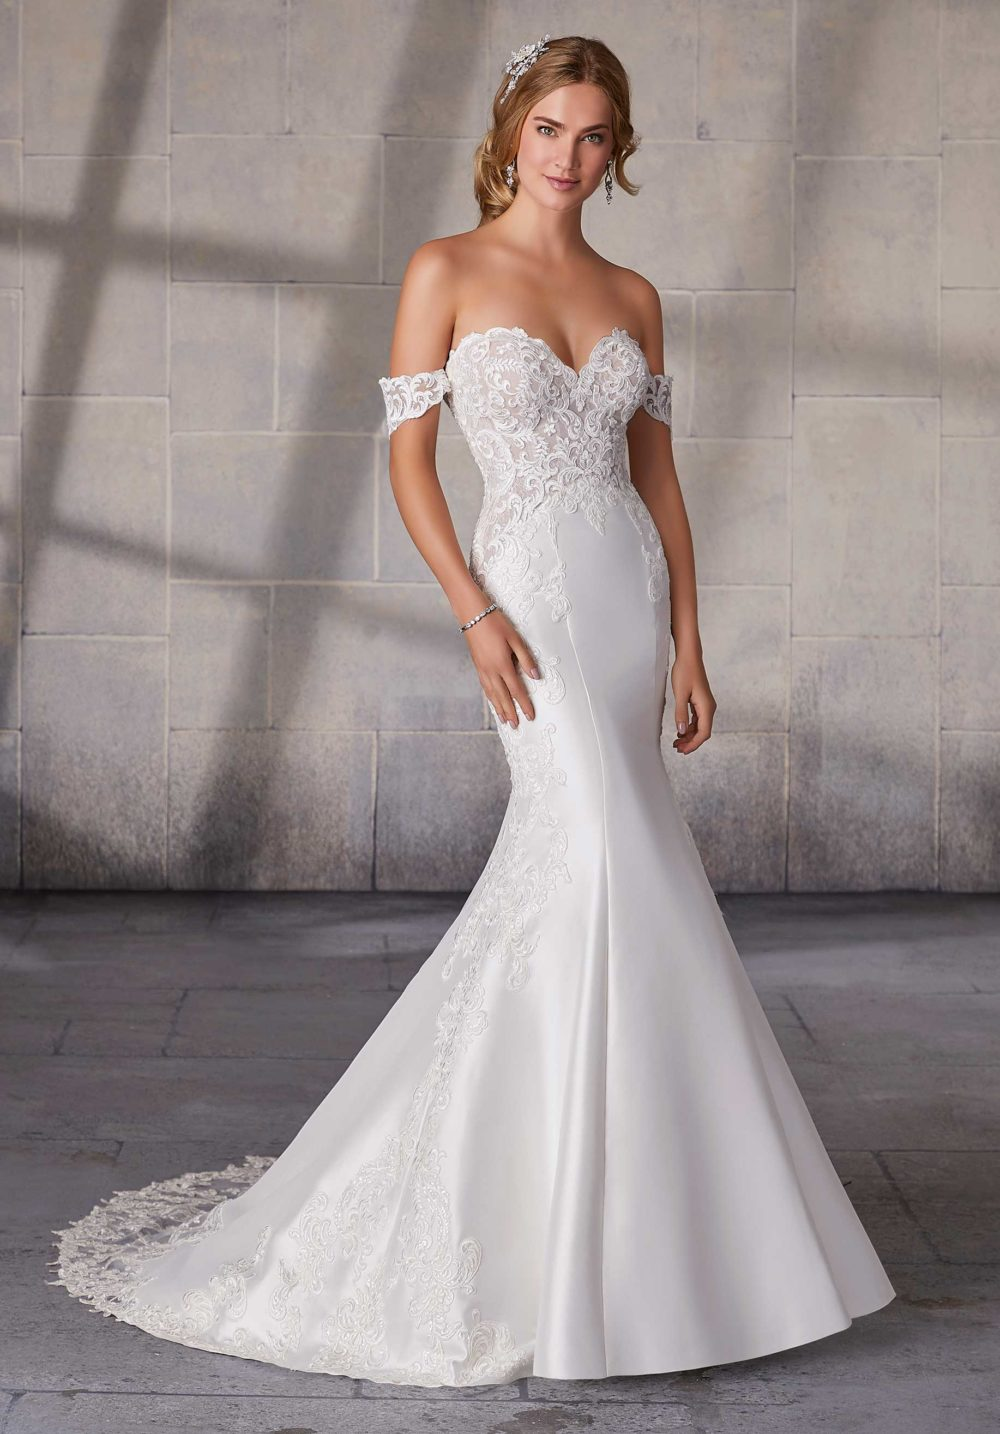 Morilee Wedding Gown Dress style 2131